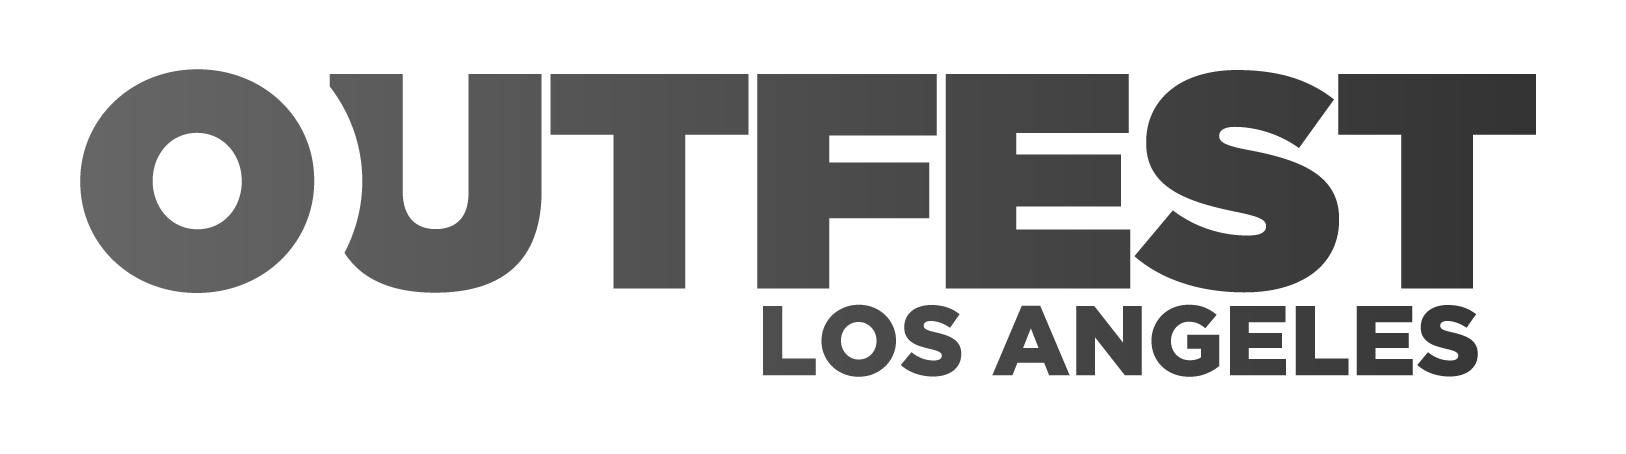 OutfestLogo_Slate.png